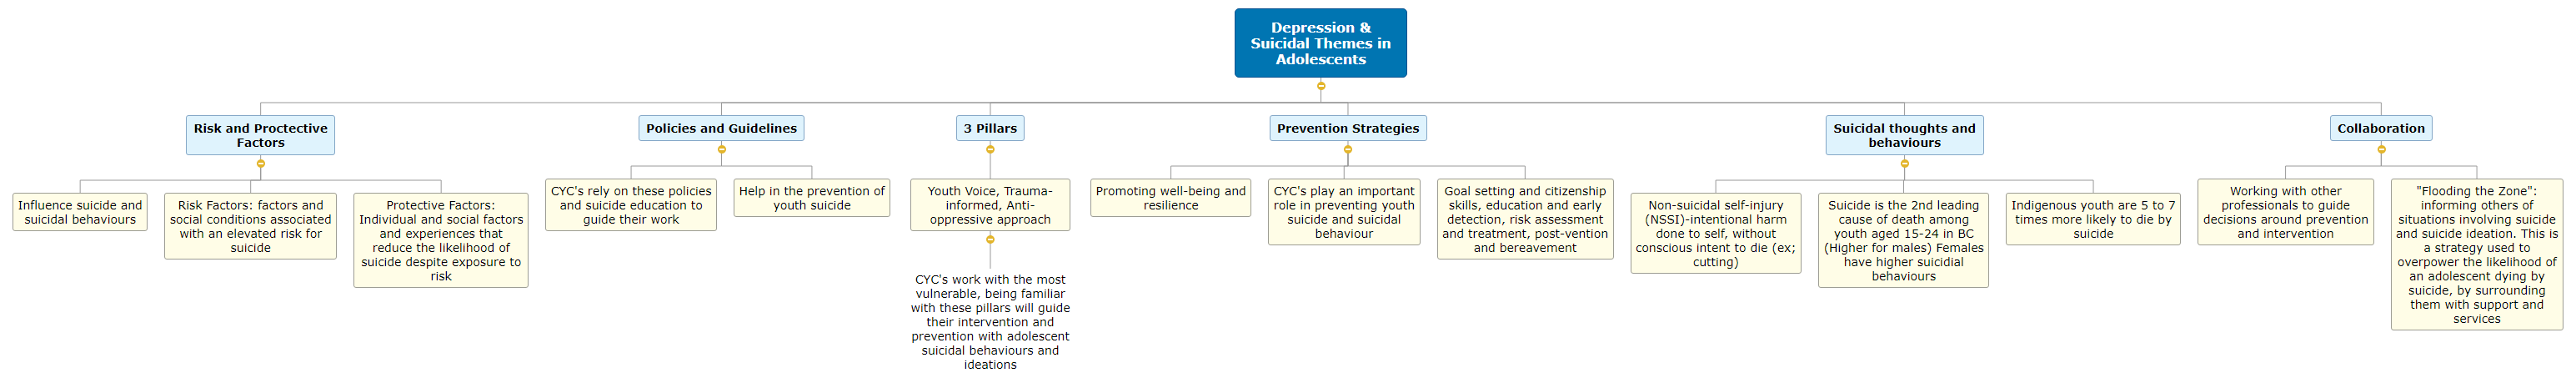 Depression & Suicidal Themes in Adolescents1 Mind Map